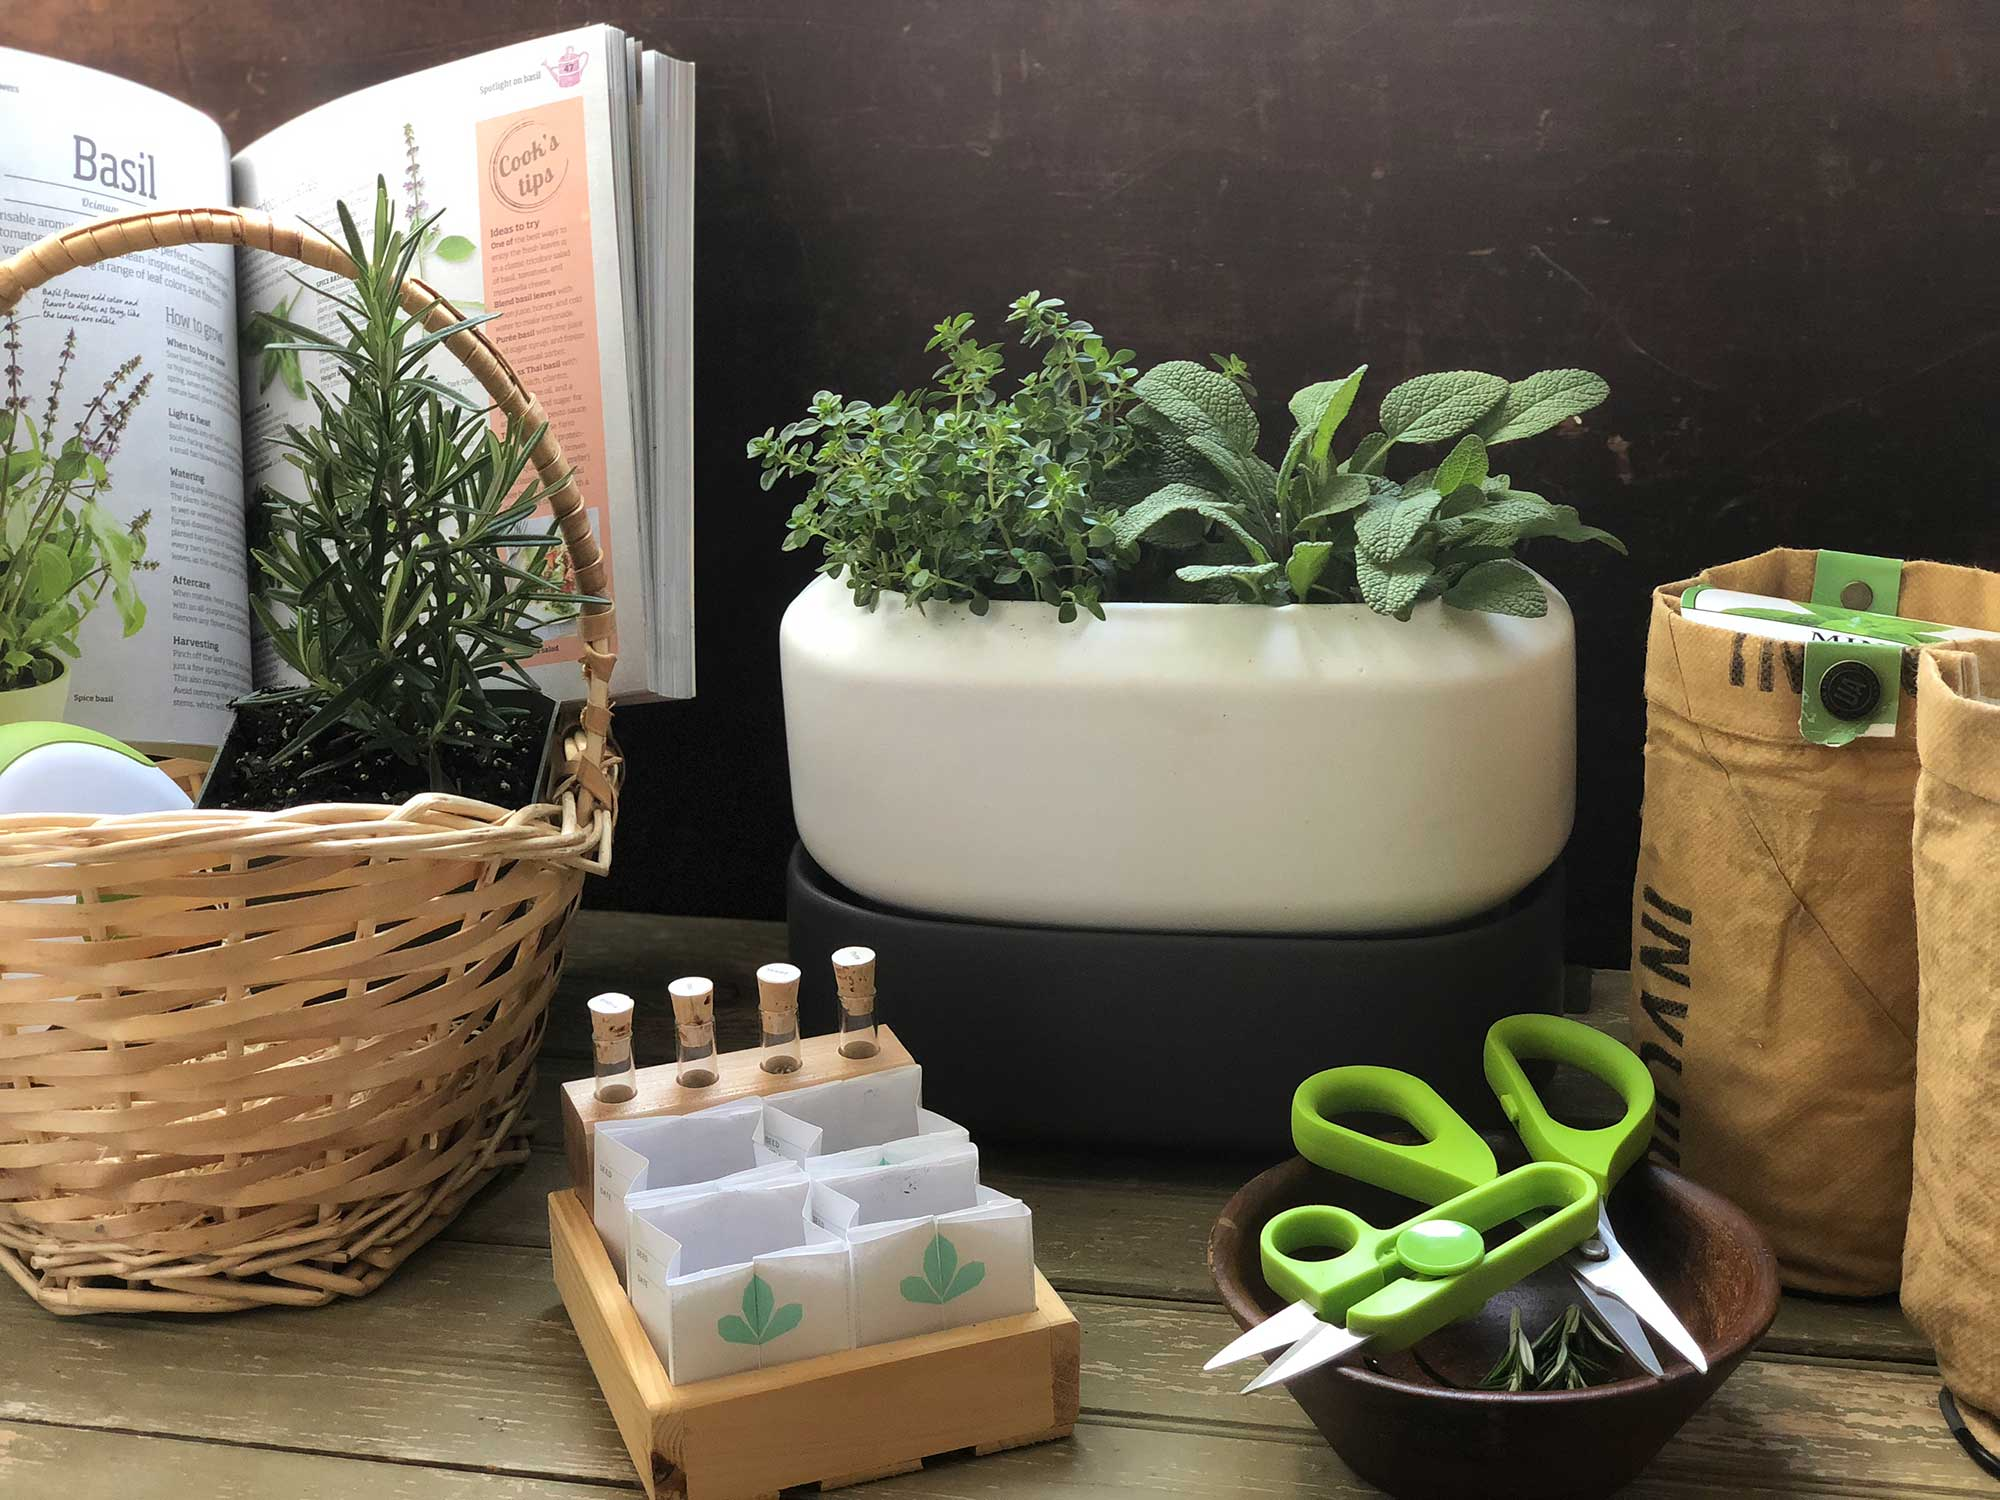 These Indoor Herb Gardening Kits Will Completely Change Your Summer Meals Saveur